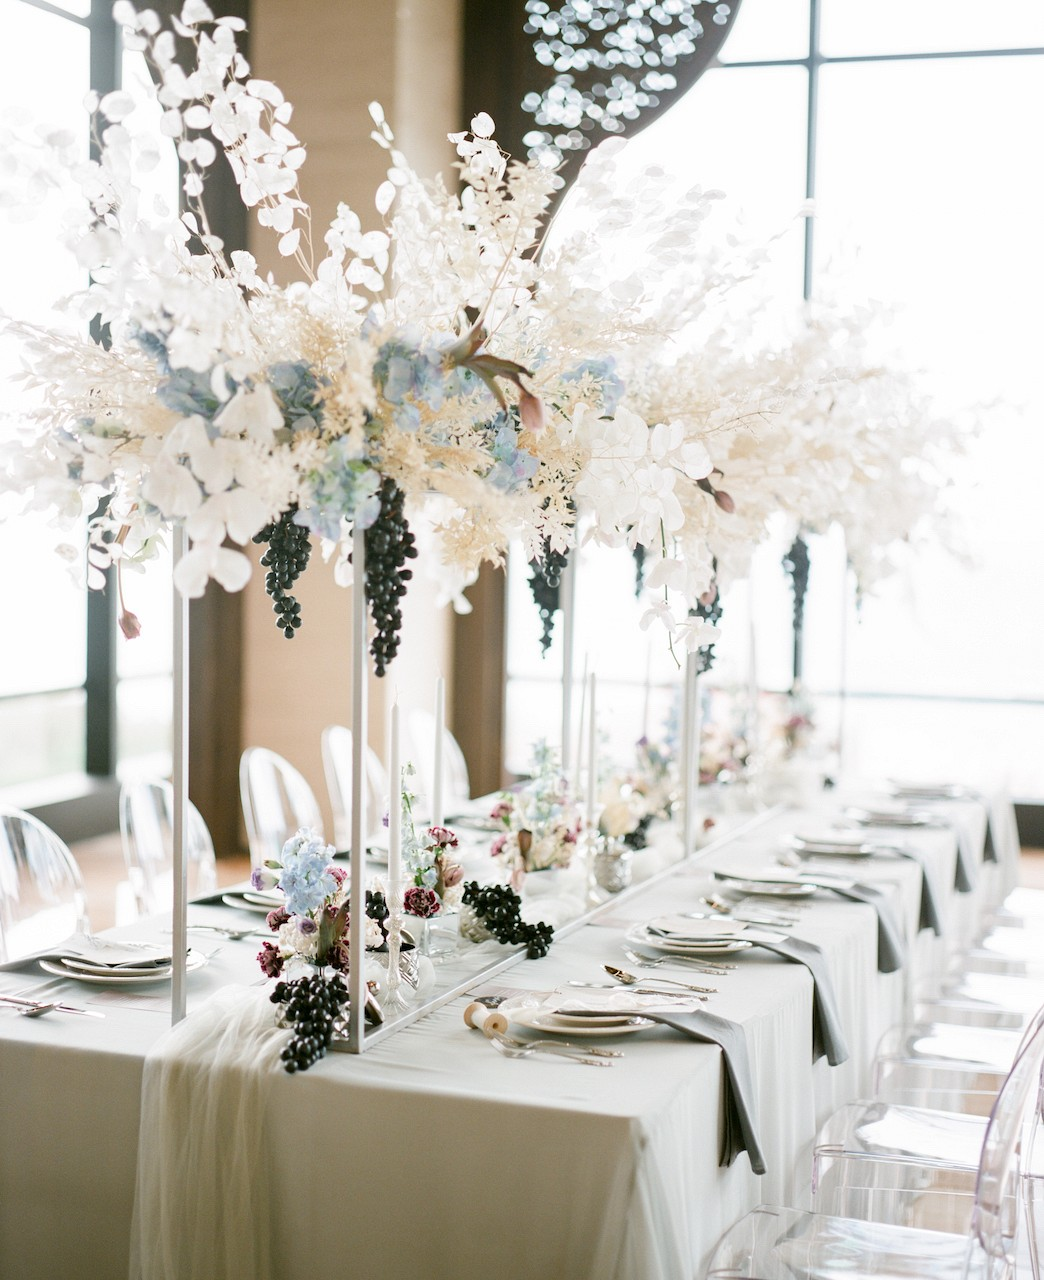 Ways to Incorporate Nature into Your Wedding Design